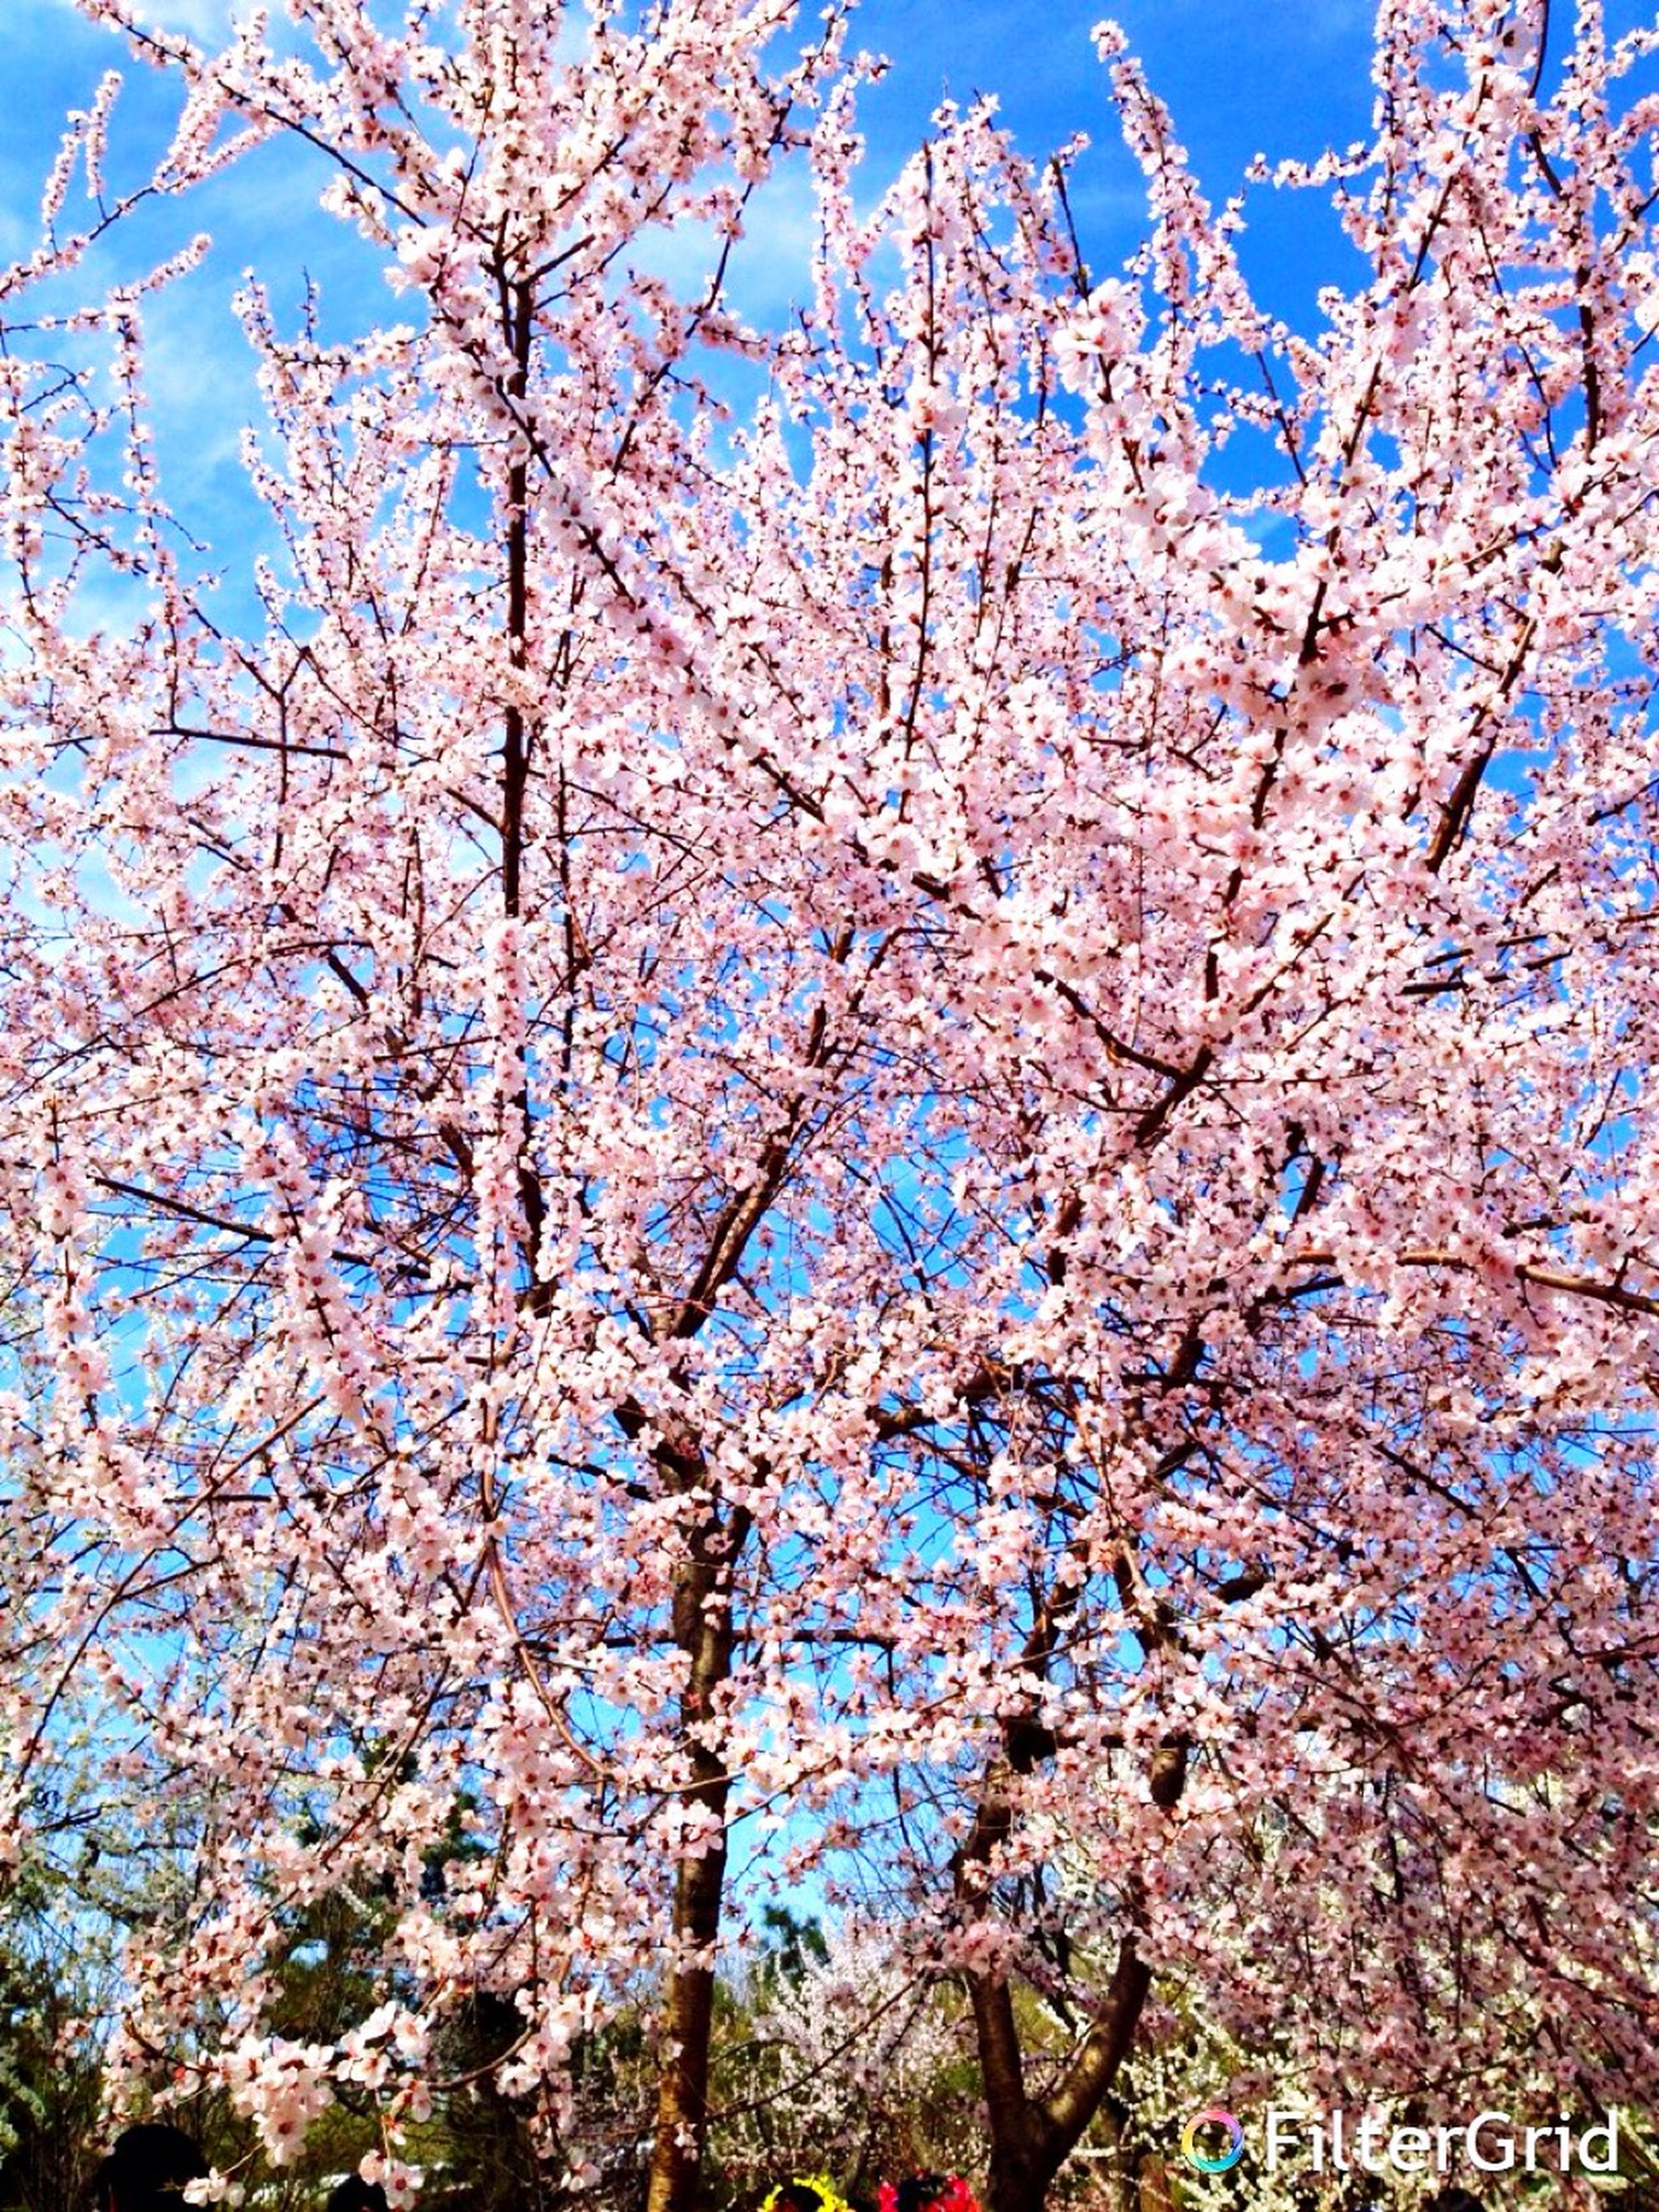 flower, tree, branch, growth, freshness, low angle view, cherry blossom, beauty in nature, blossom, nature, fragility, cherry tree, clear sky, springtime, blue, in bloom, blooming, sky, day, white color